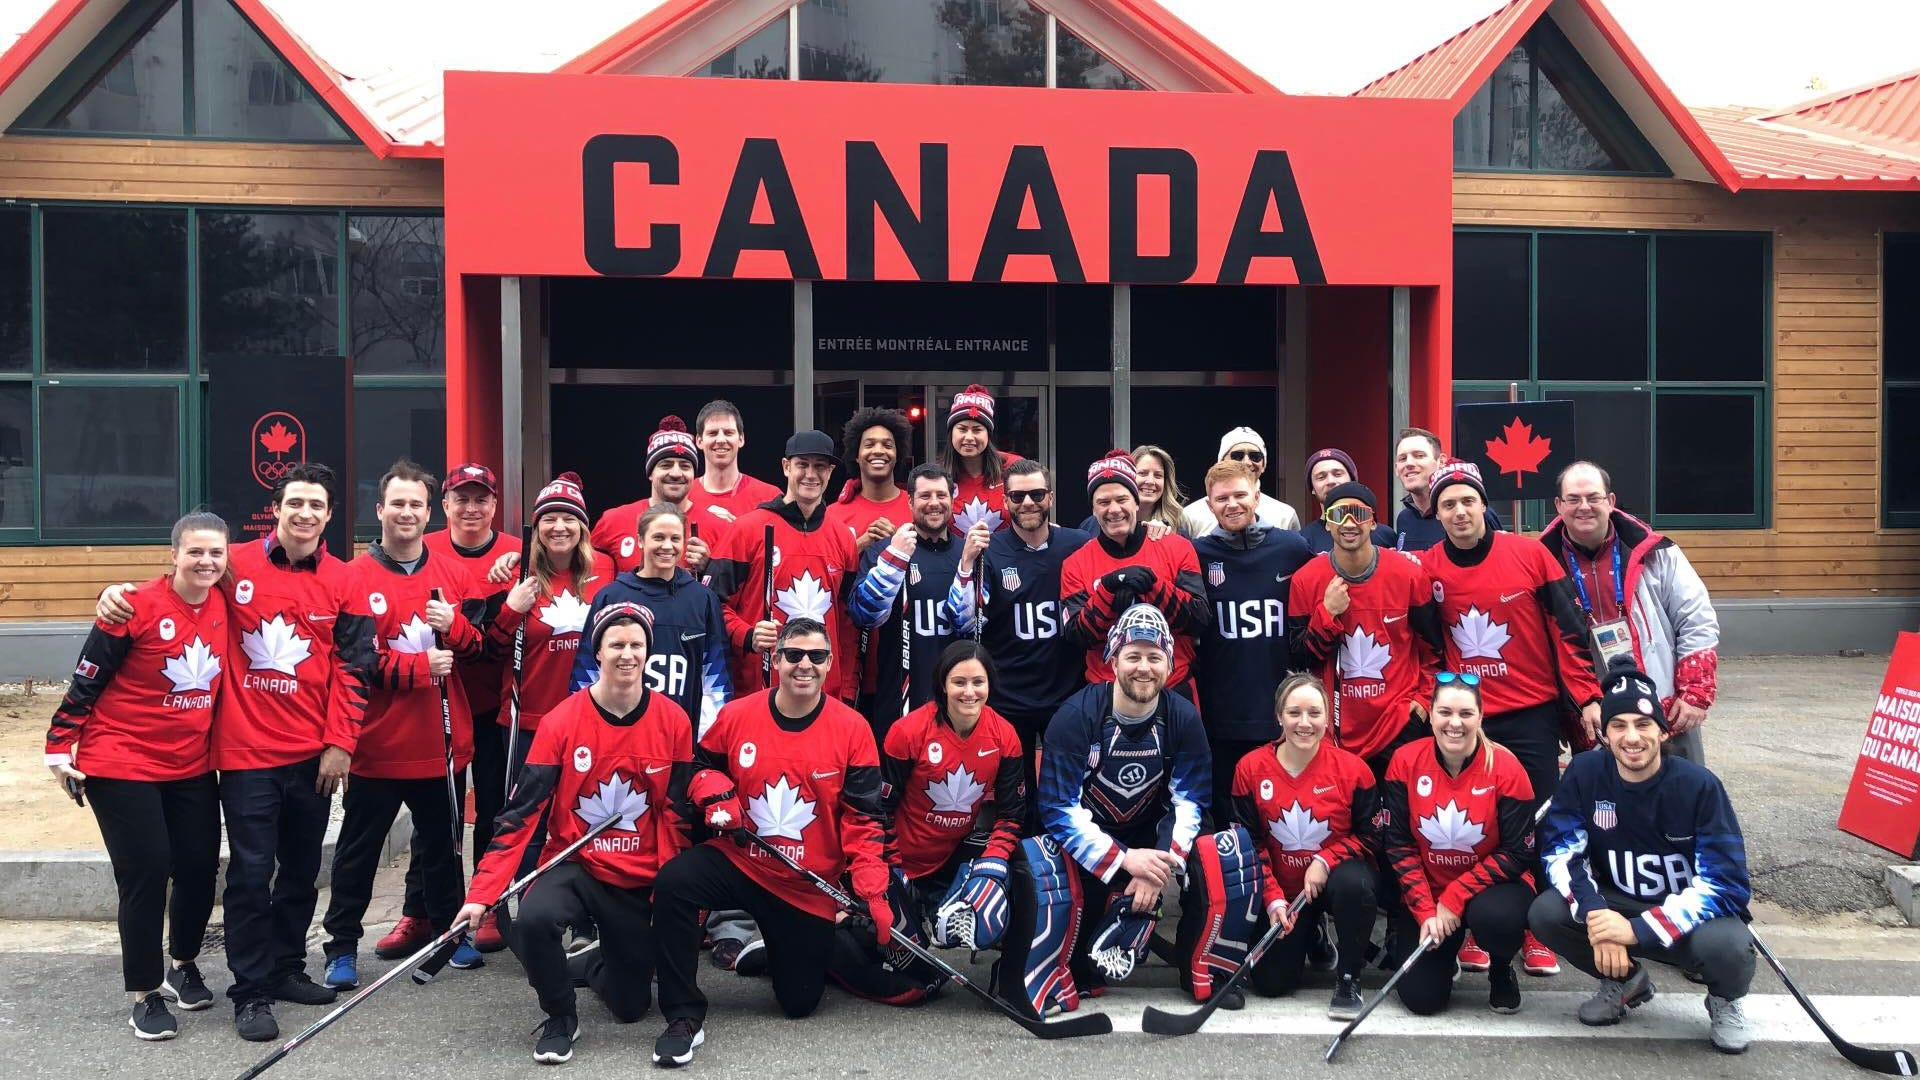 The USA vs. Canada hockey game you didn't know about at the Olympics